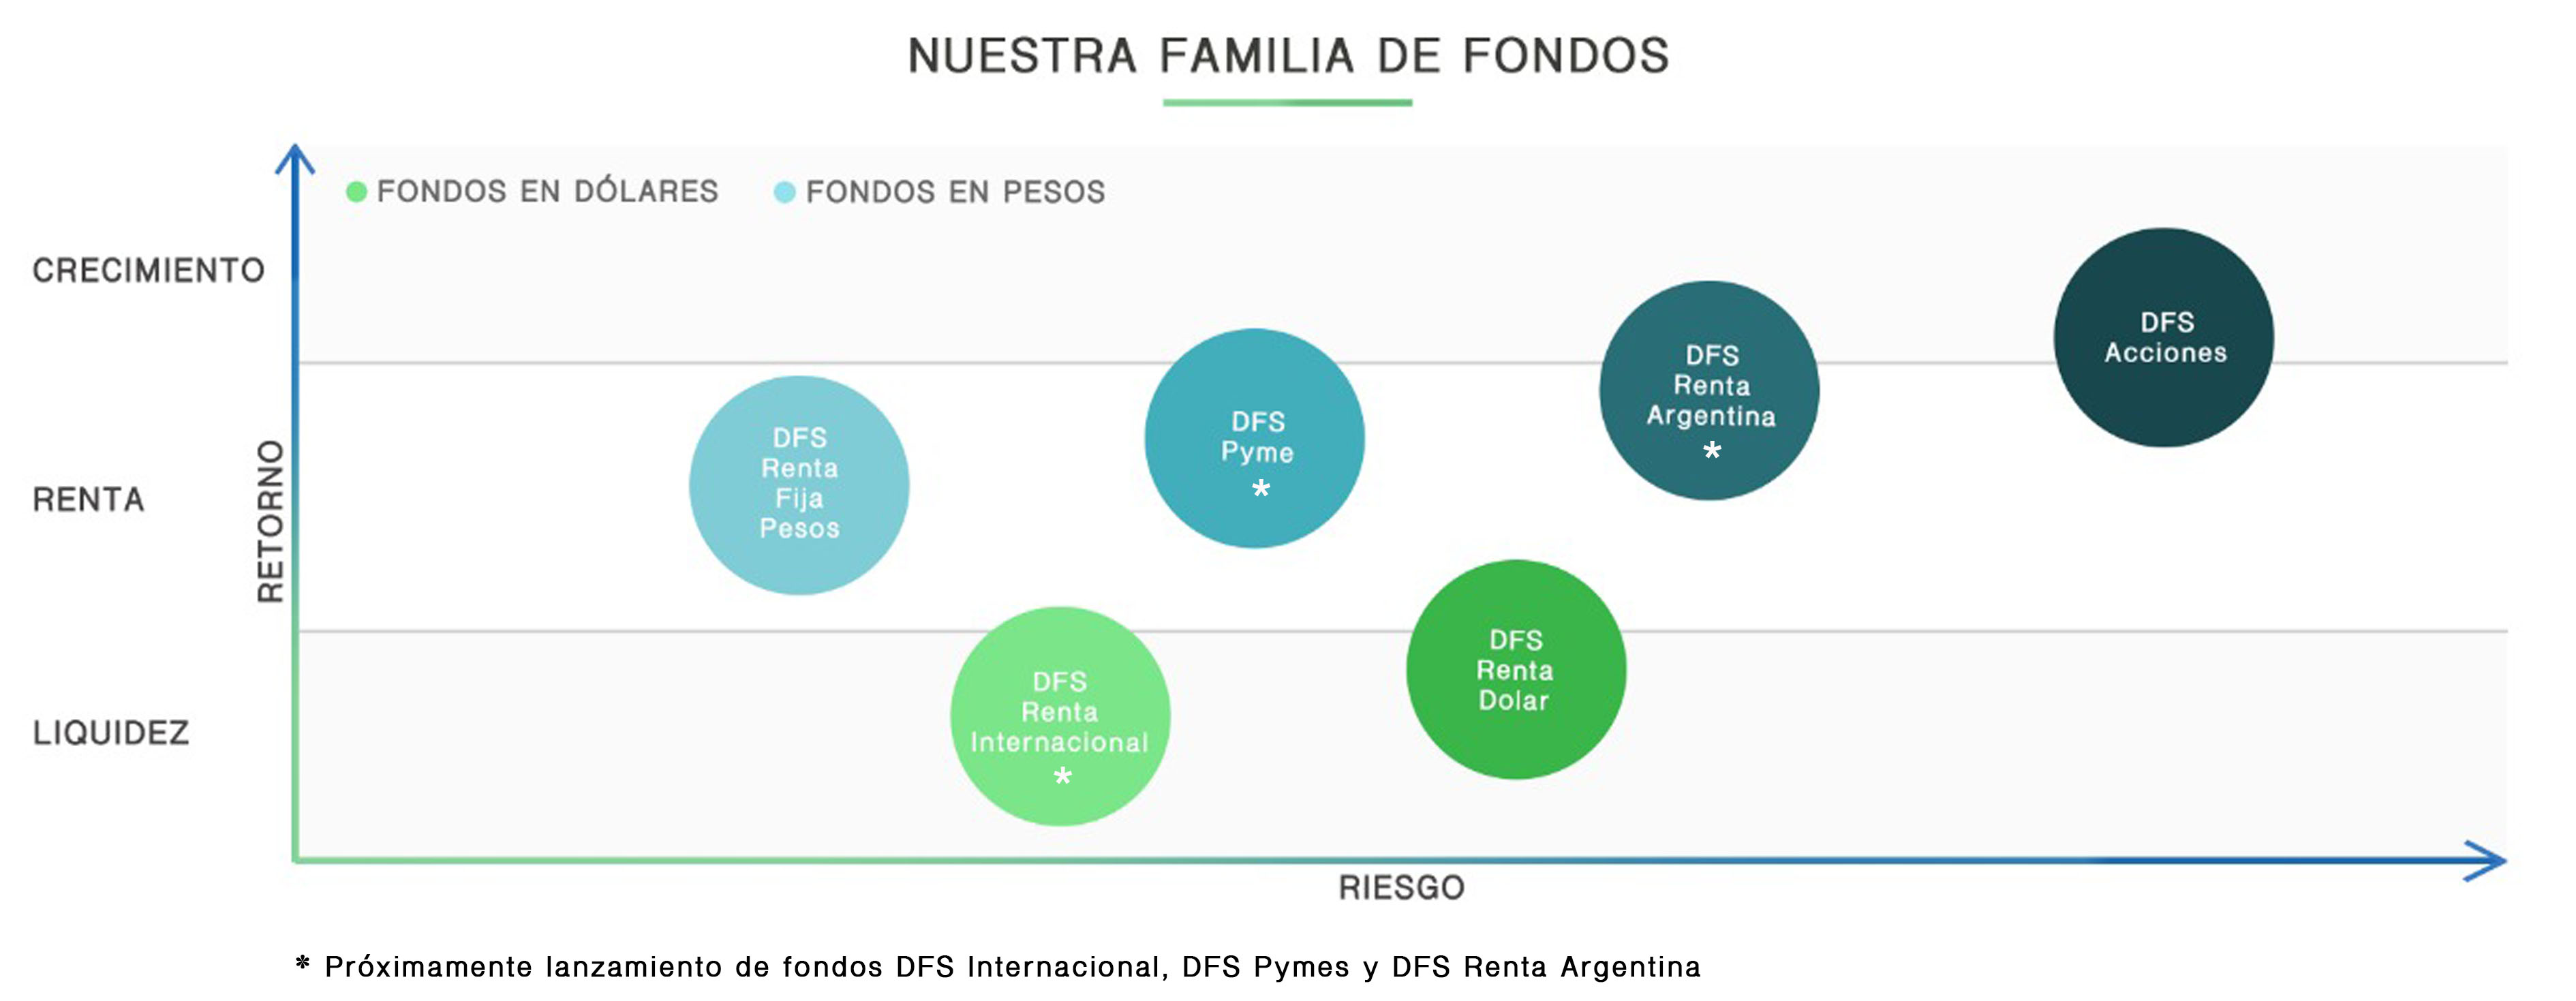 dfs-ultimo (1)